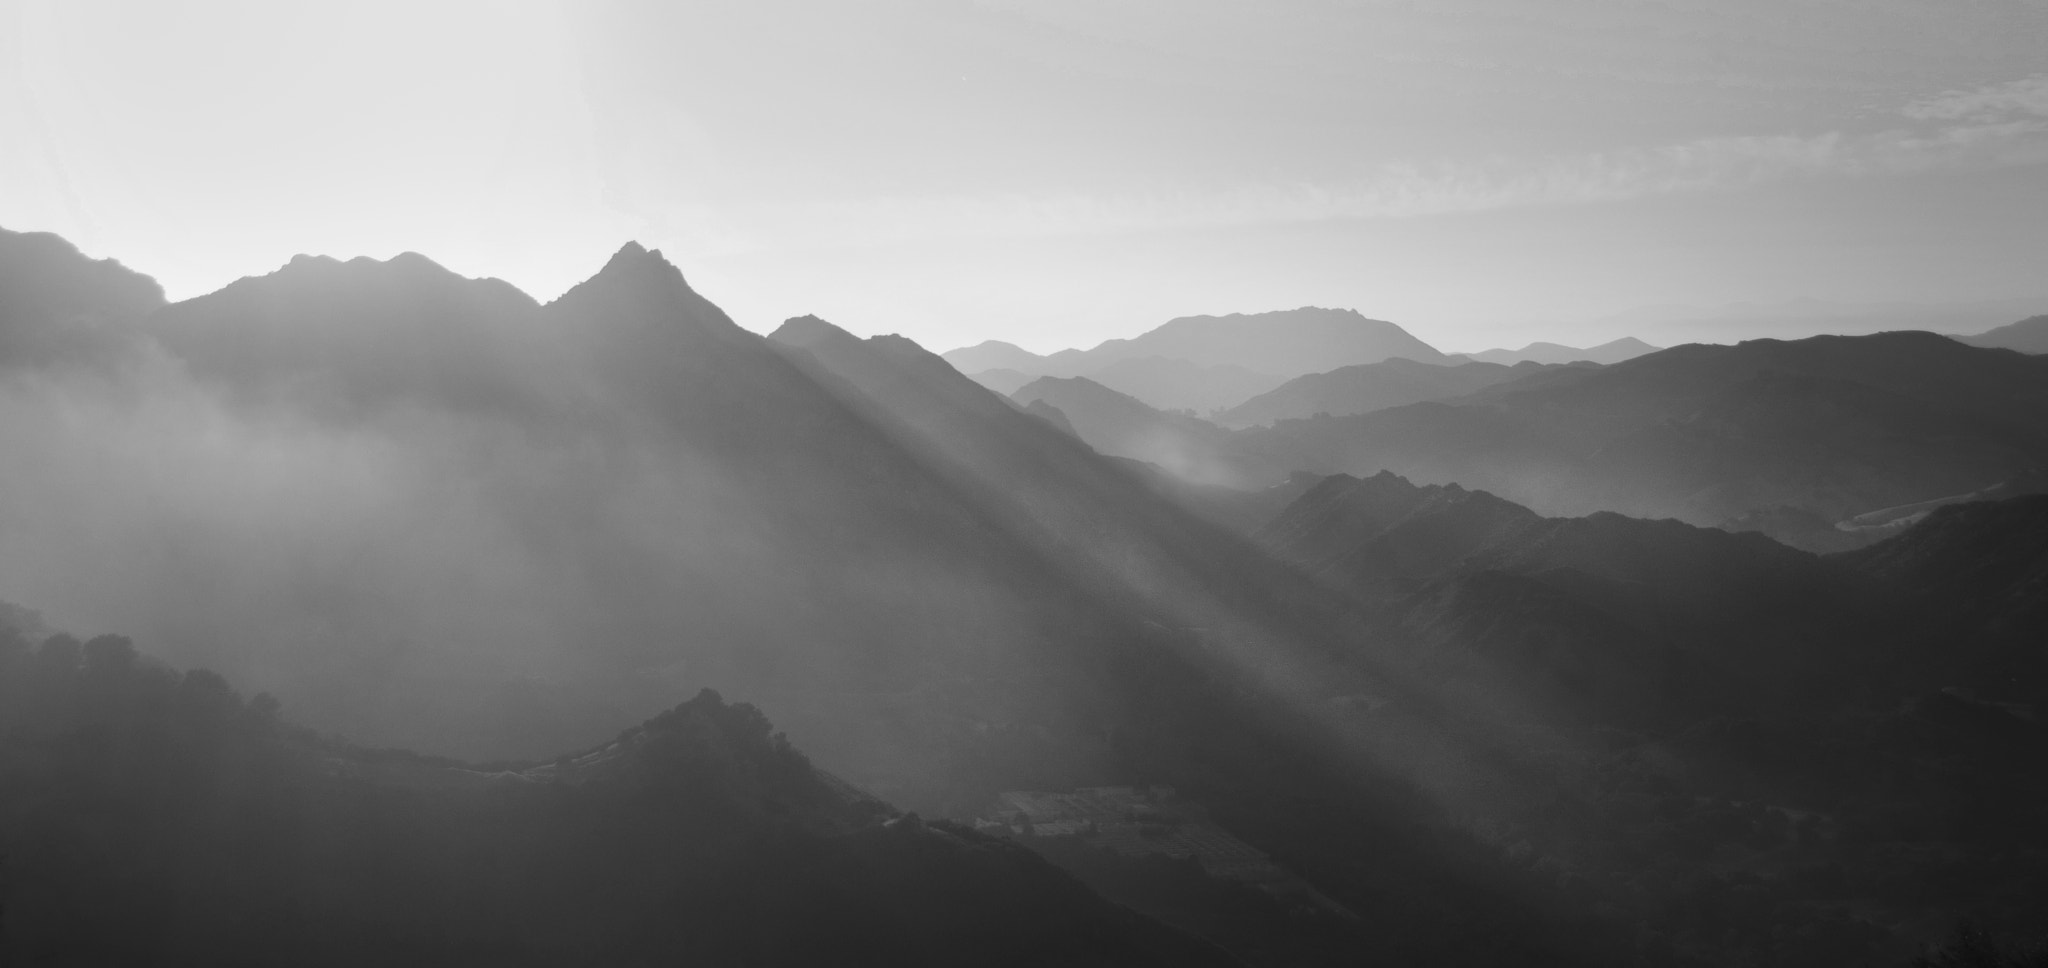 Photograph The Misty Mountains by Pauline Roupski on 500px